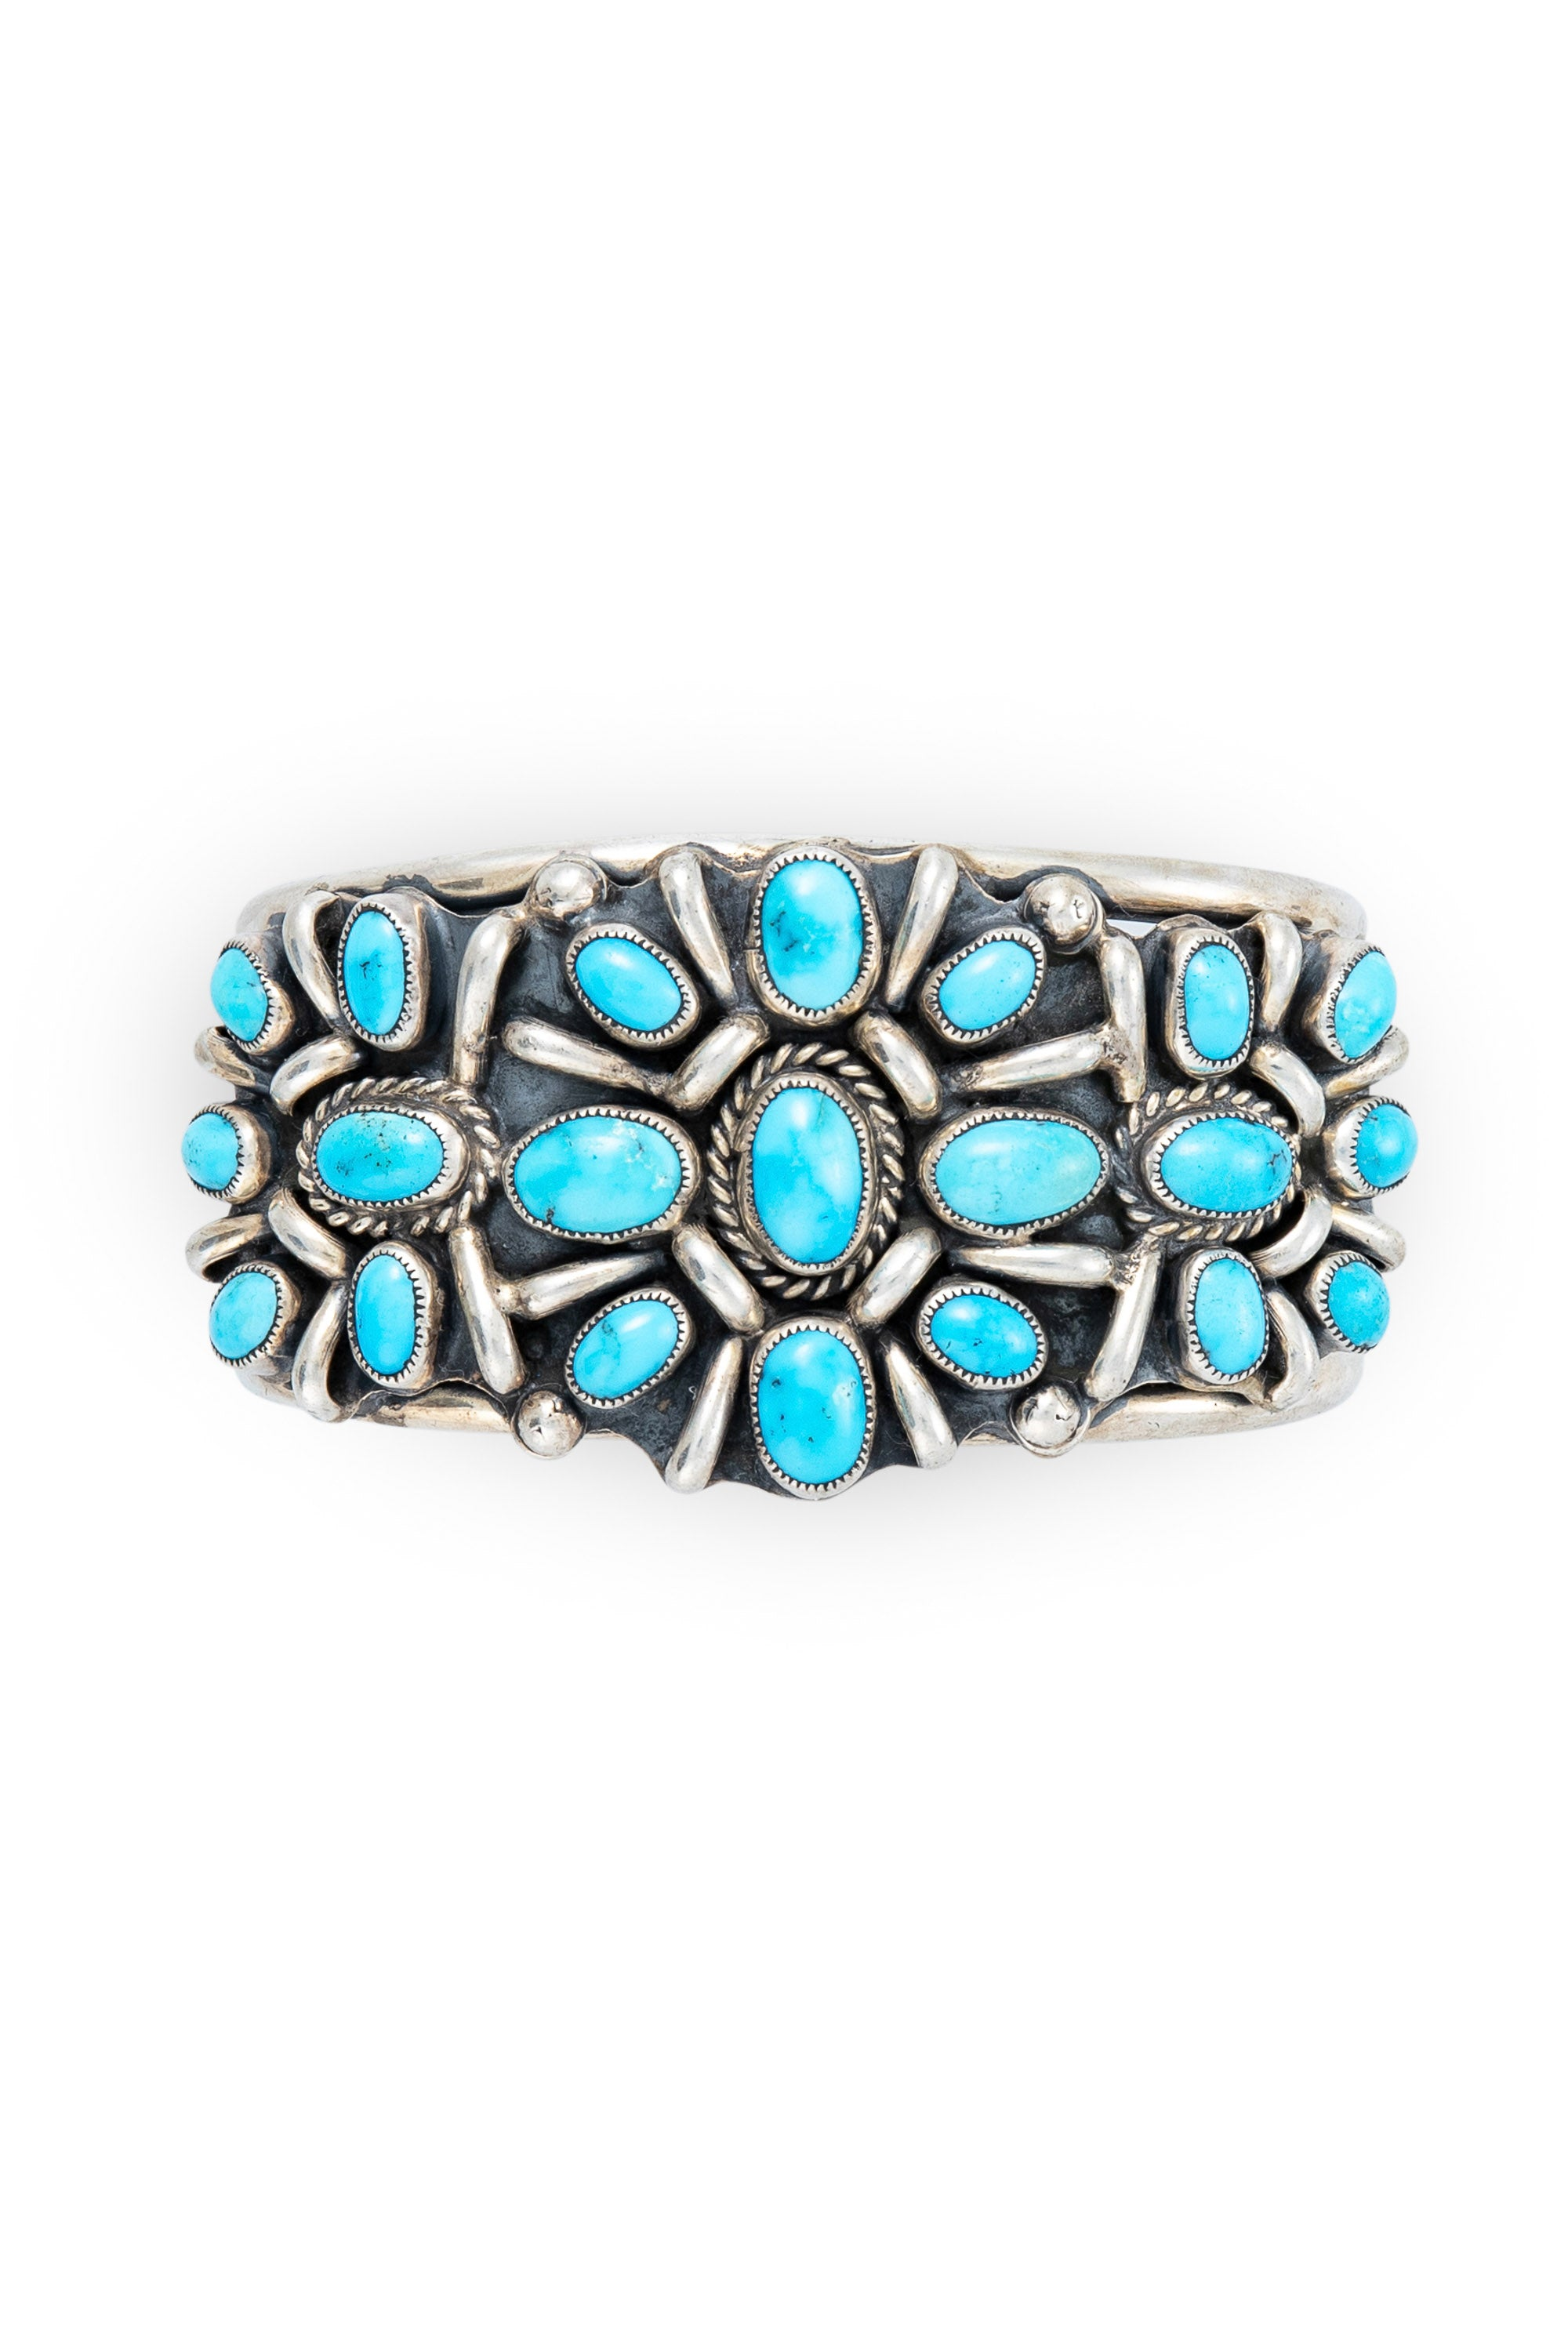 Cuff, Cluster, Turquoise, Vintage, '80's, 2663